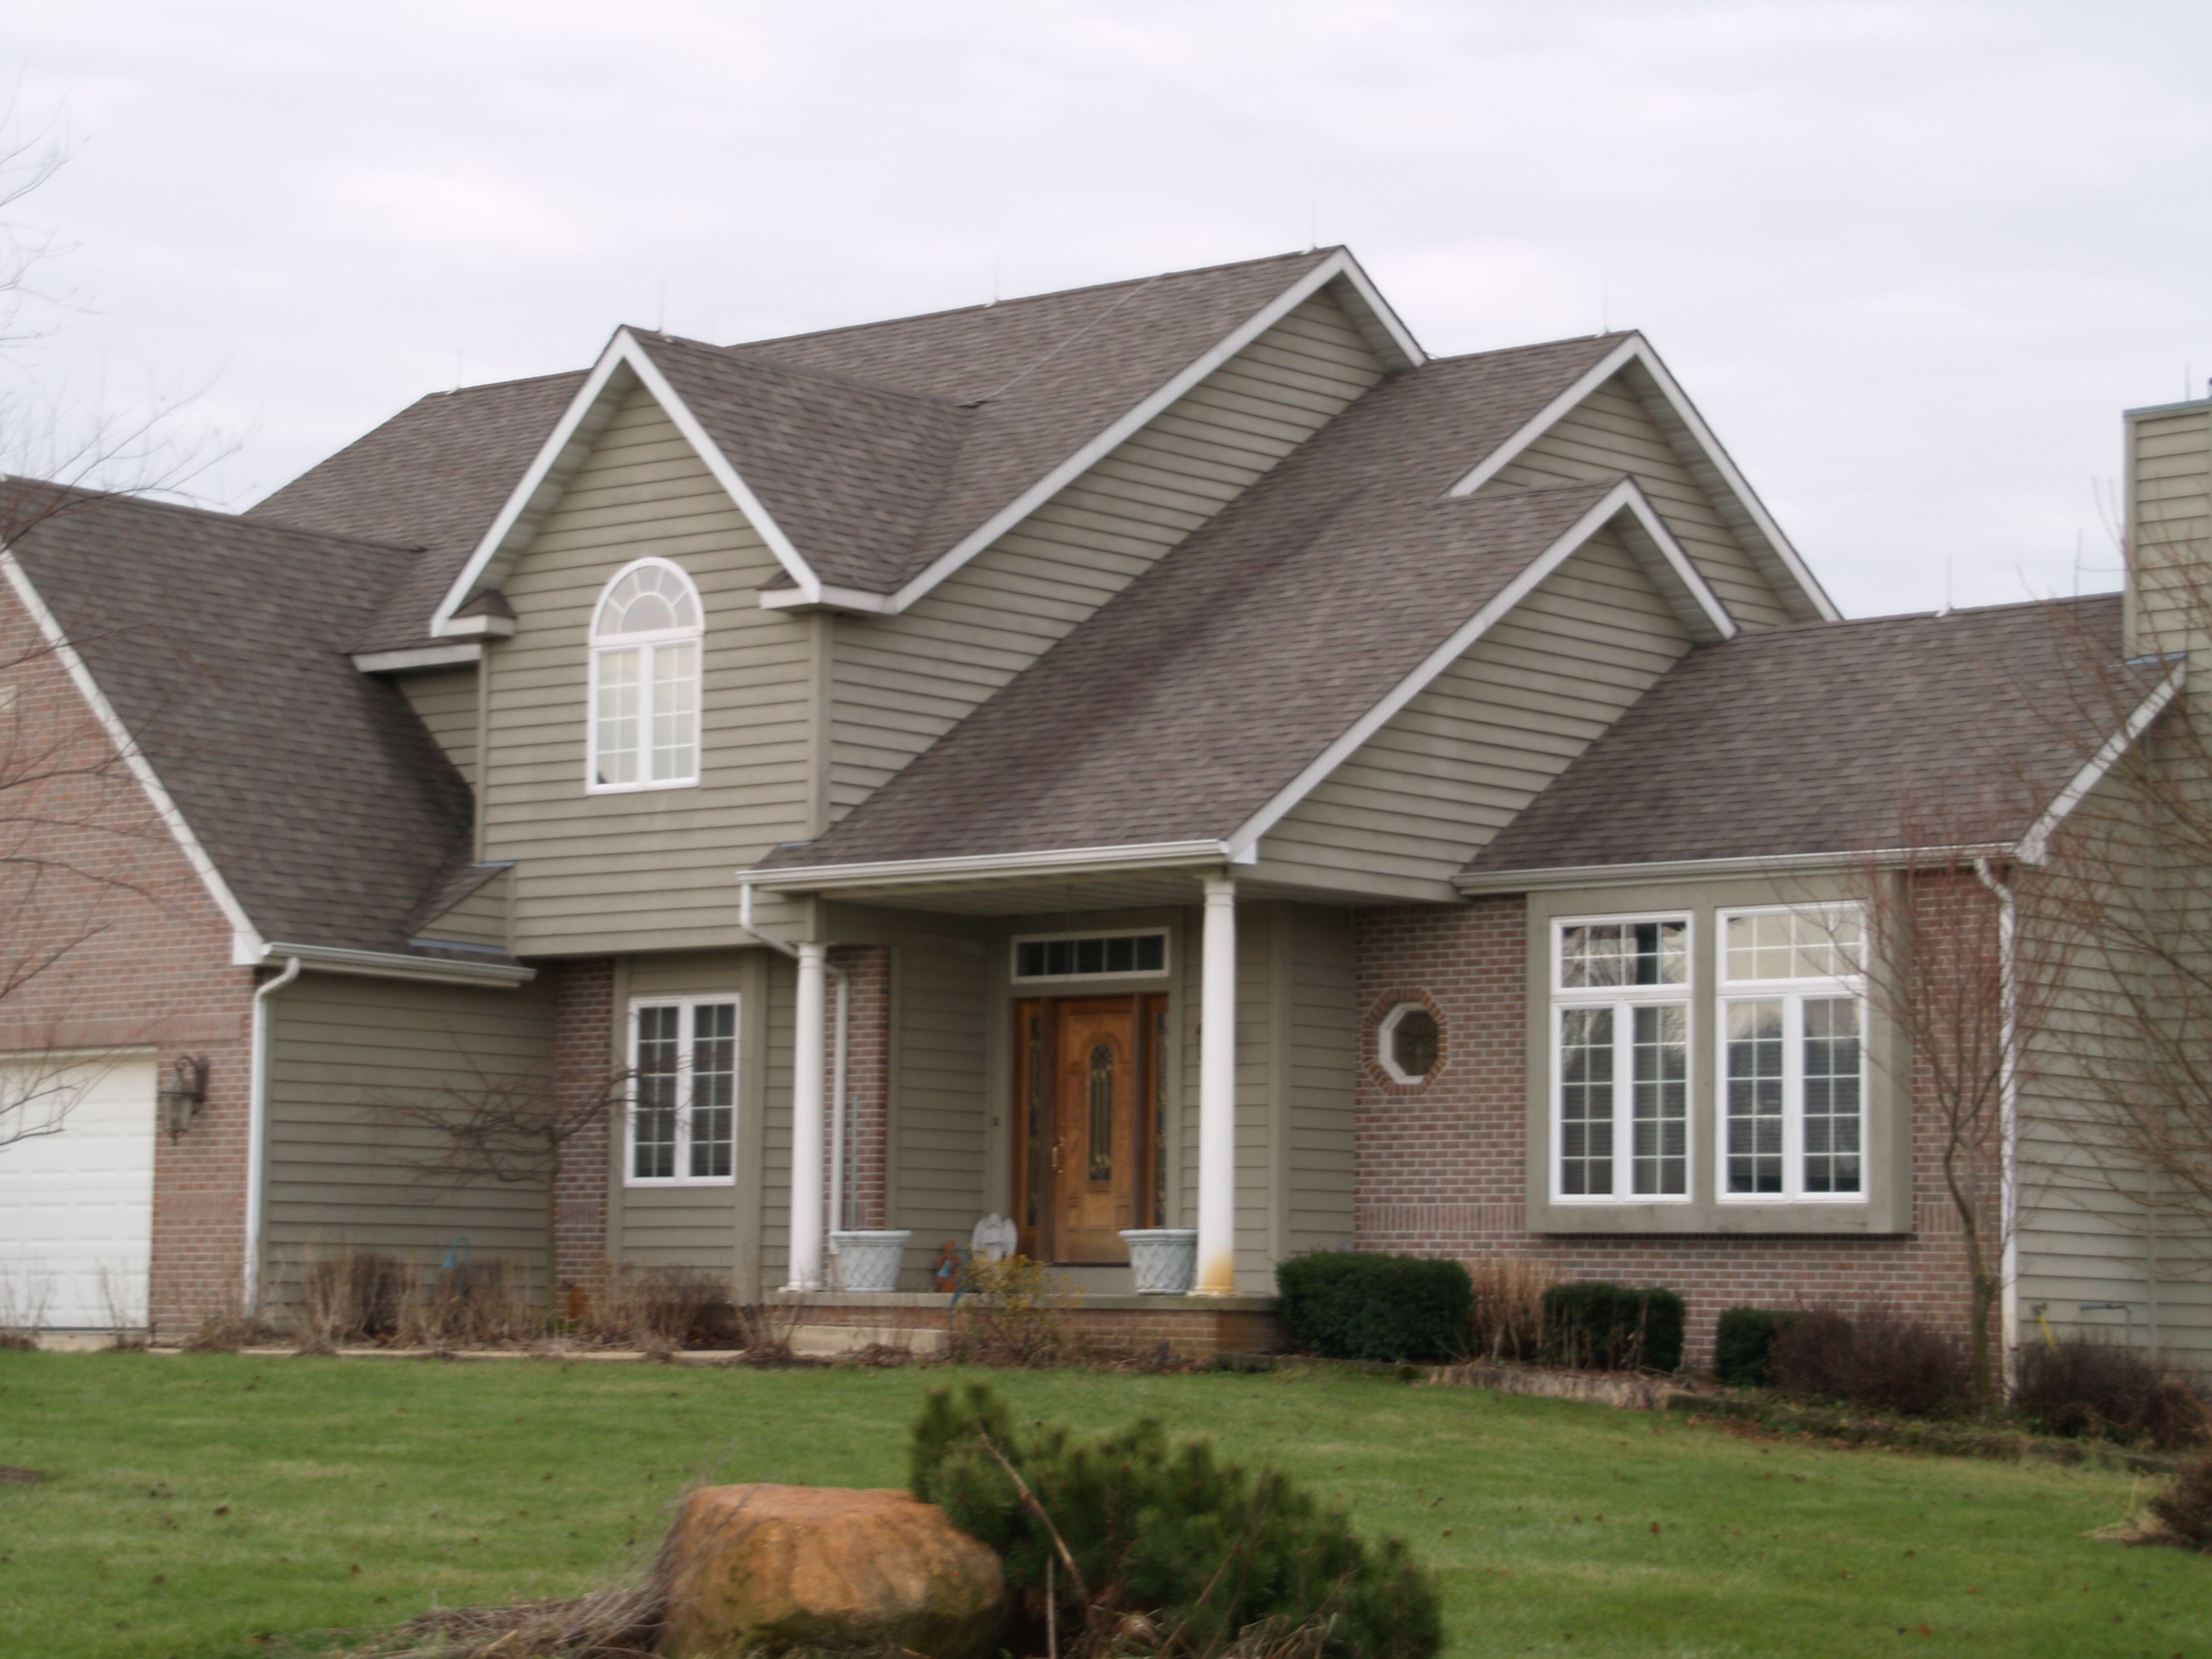 Siding Color Colonial Revival Green Stone Sw2826 Free Estimates Call 219 762 8388 Exterior